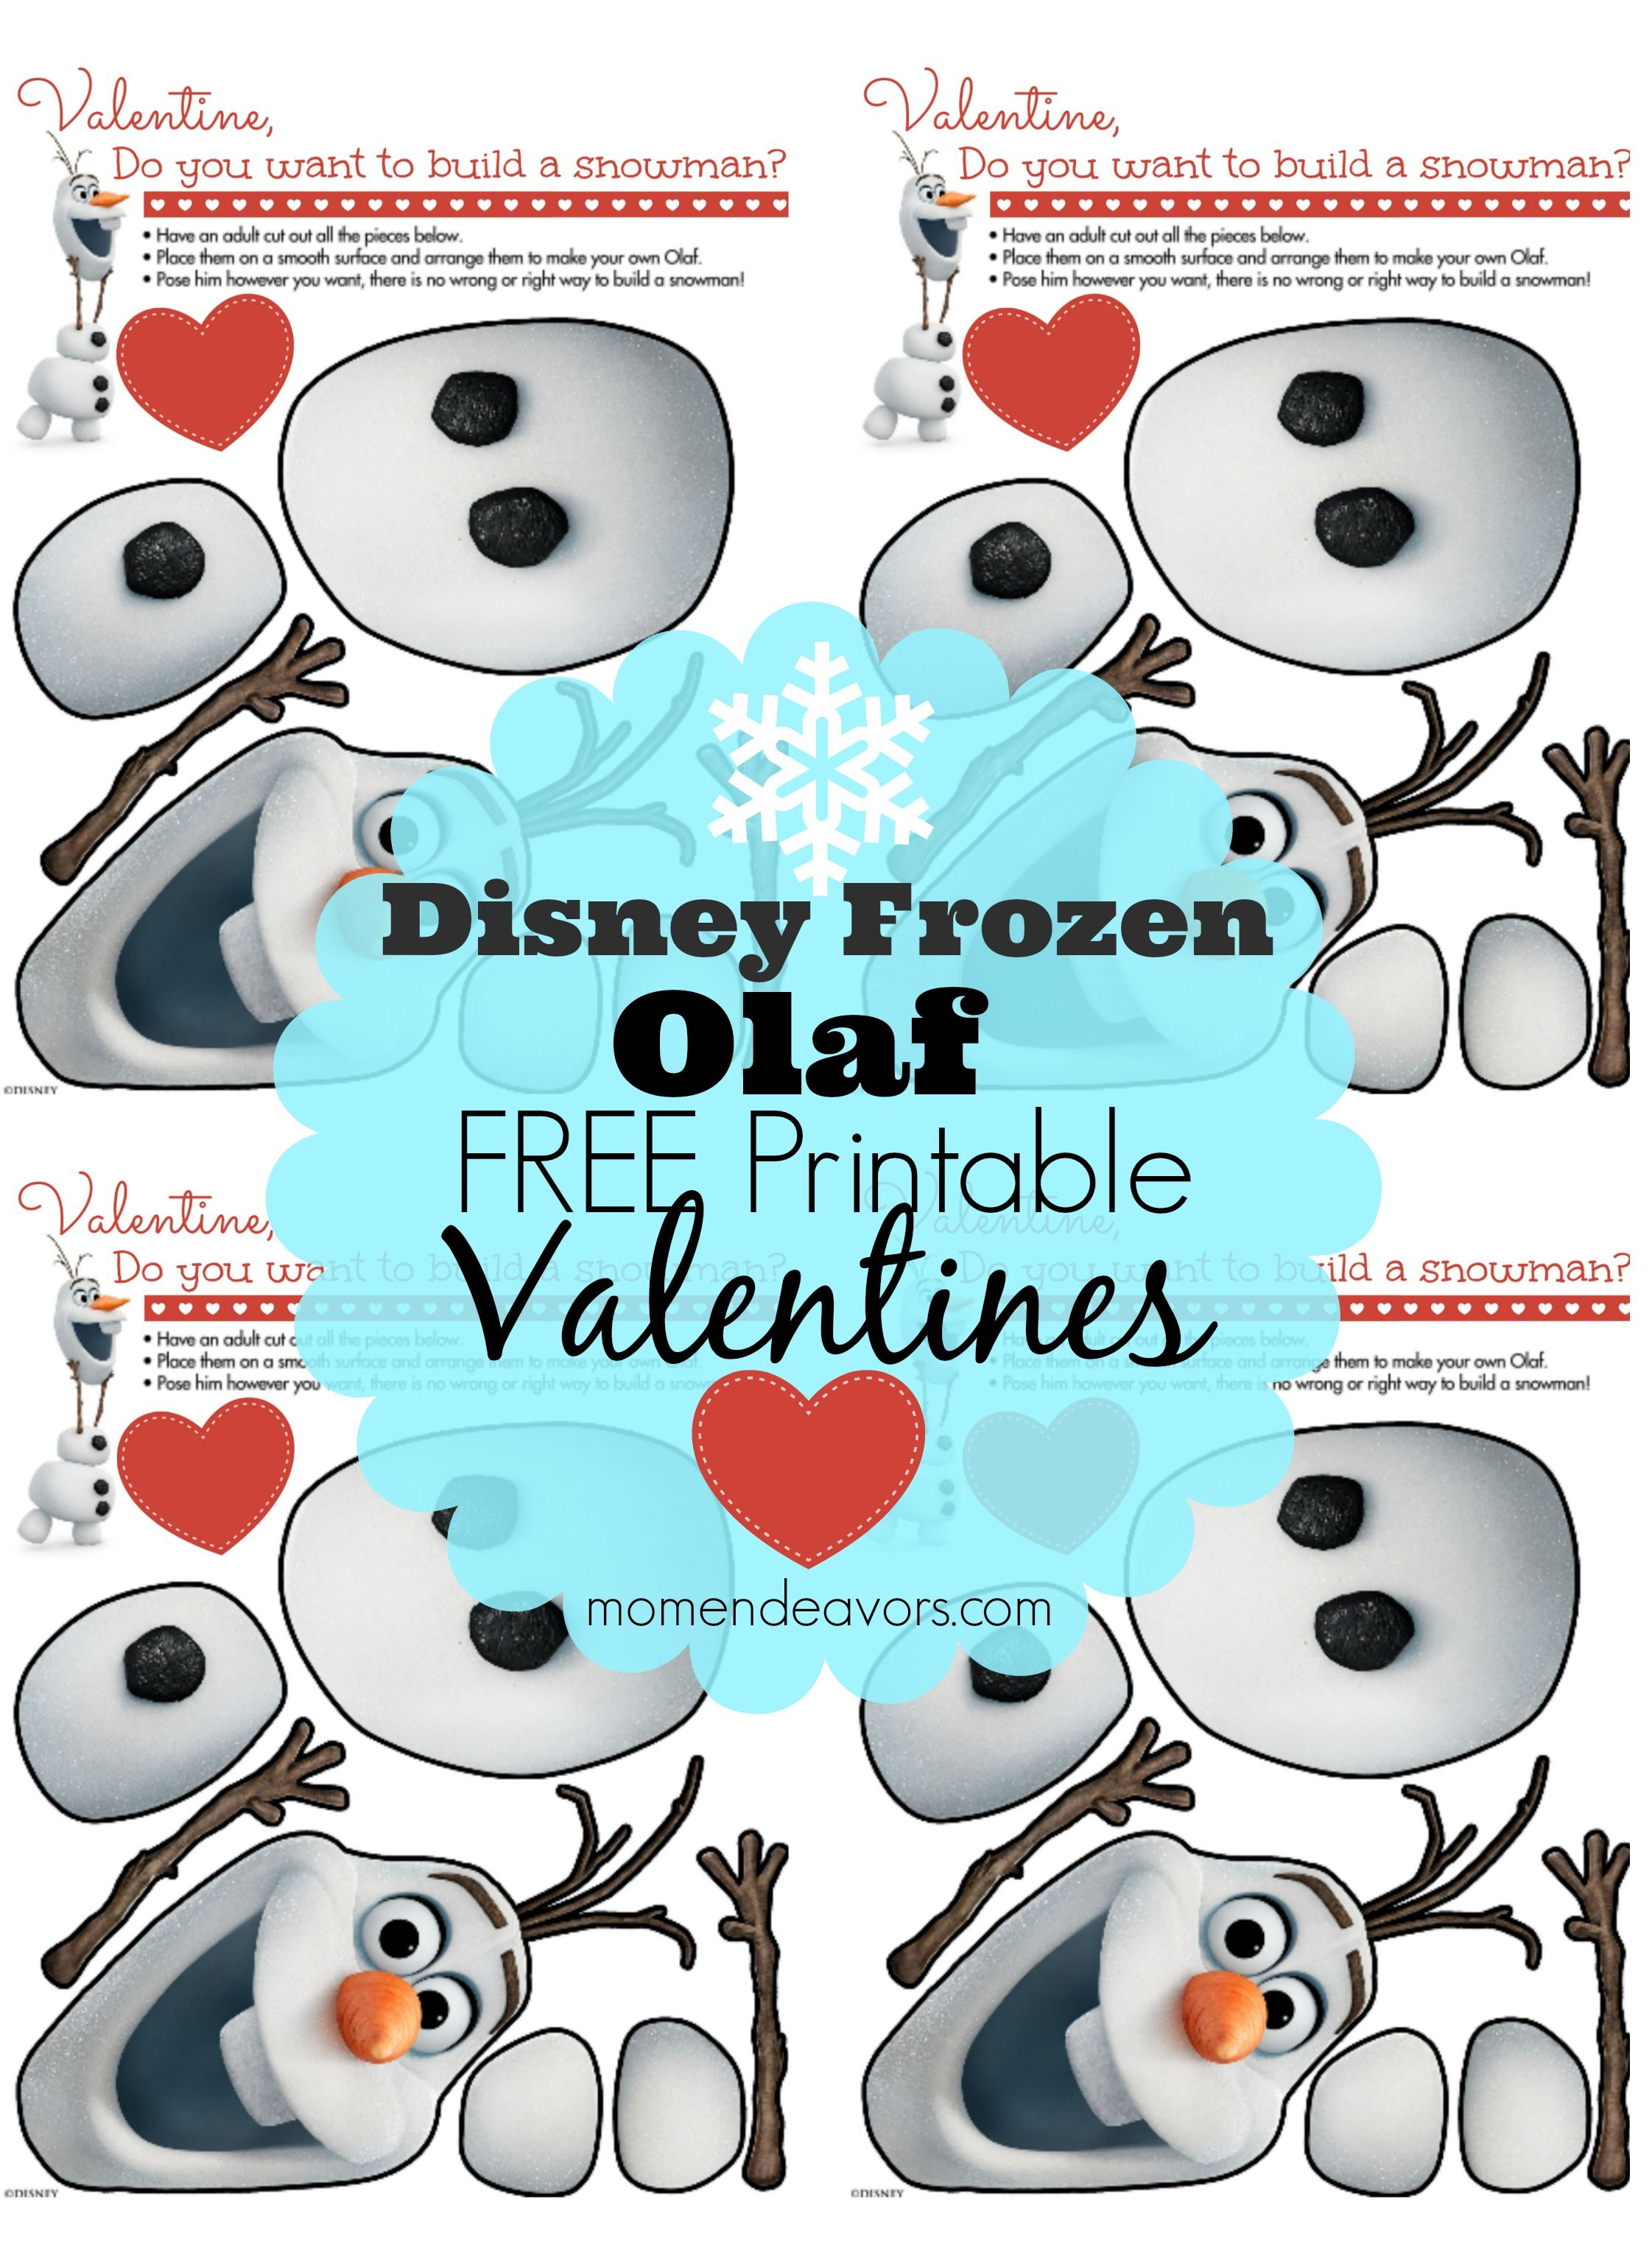 photo regarding Do You Want to Build a Snowman Printable named Cute+Disneys+FROZEN+Olaf+Absolutely free+Printable+Valentines+by means of